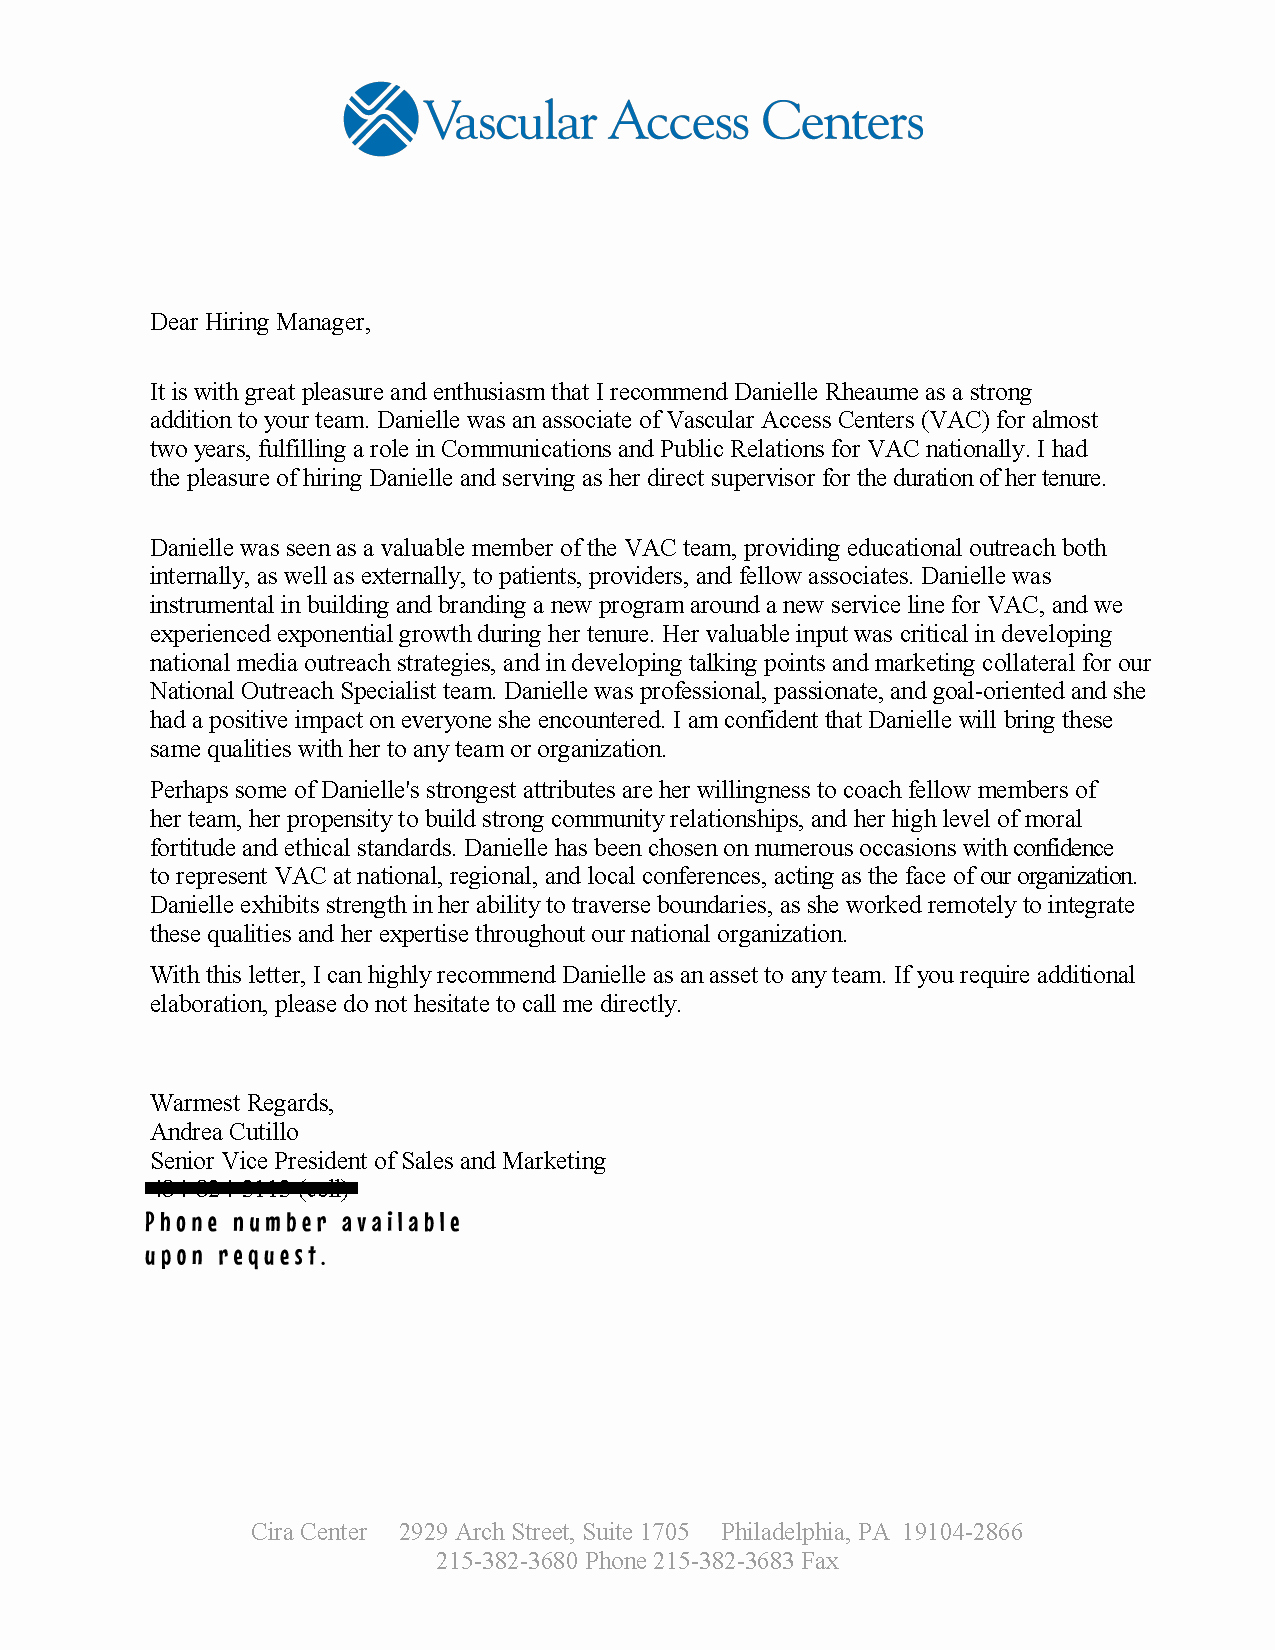 Sample Professional Letter Of Recommendation Unique Re Mendation Letter for Court Best Template Collection